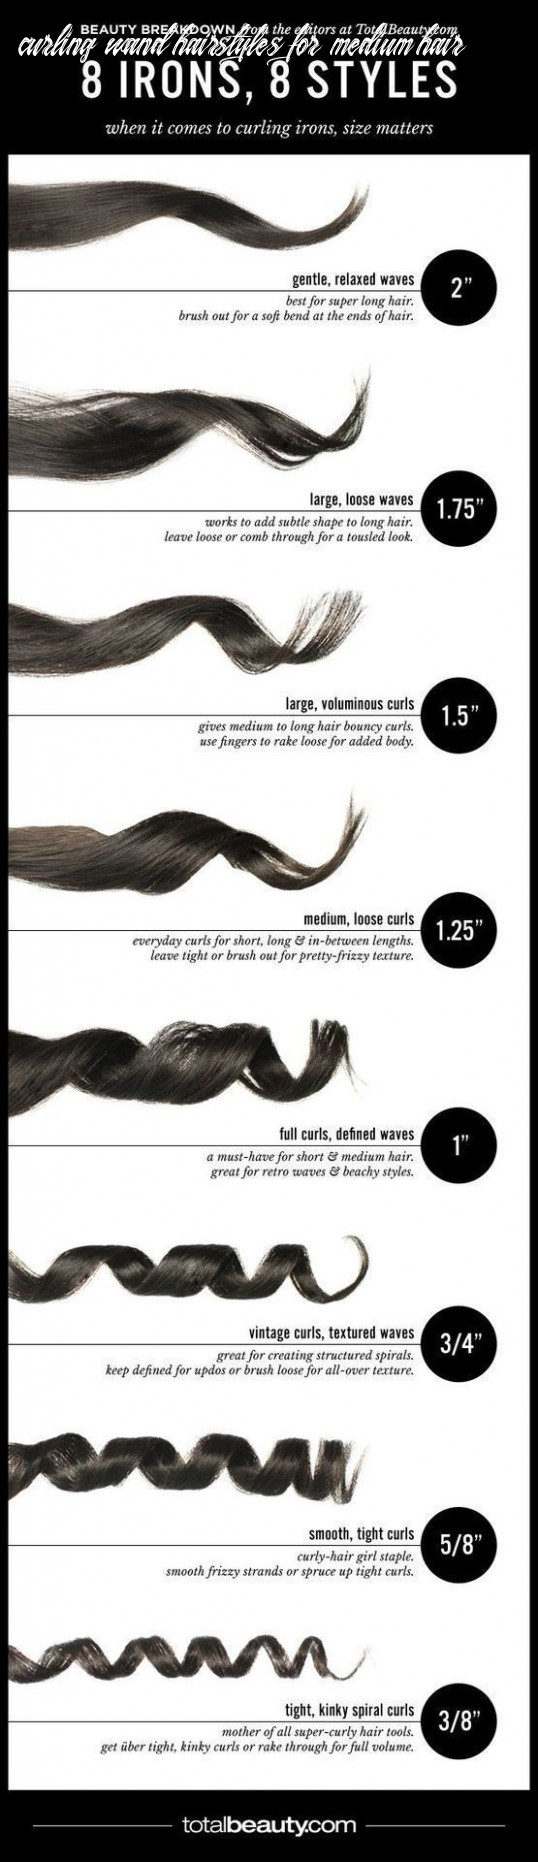 Curling iron line up: the right wand for every curl | curling iron